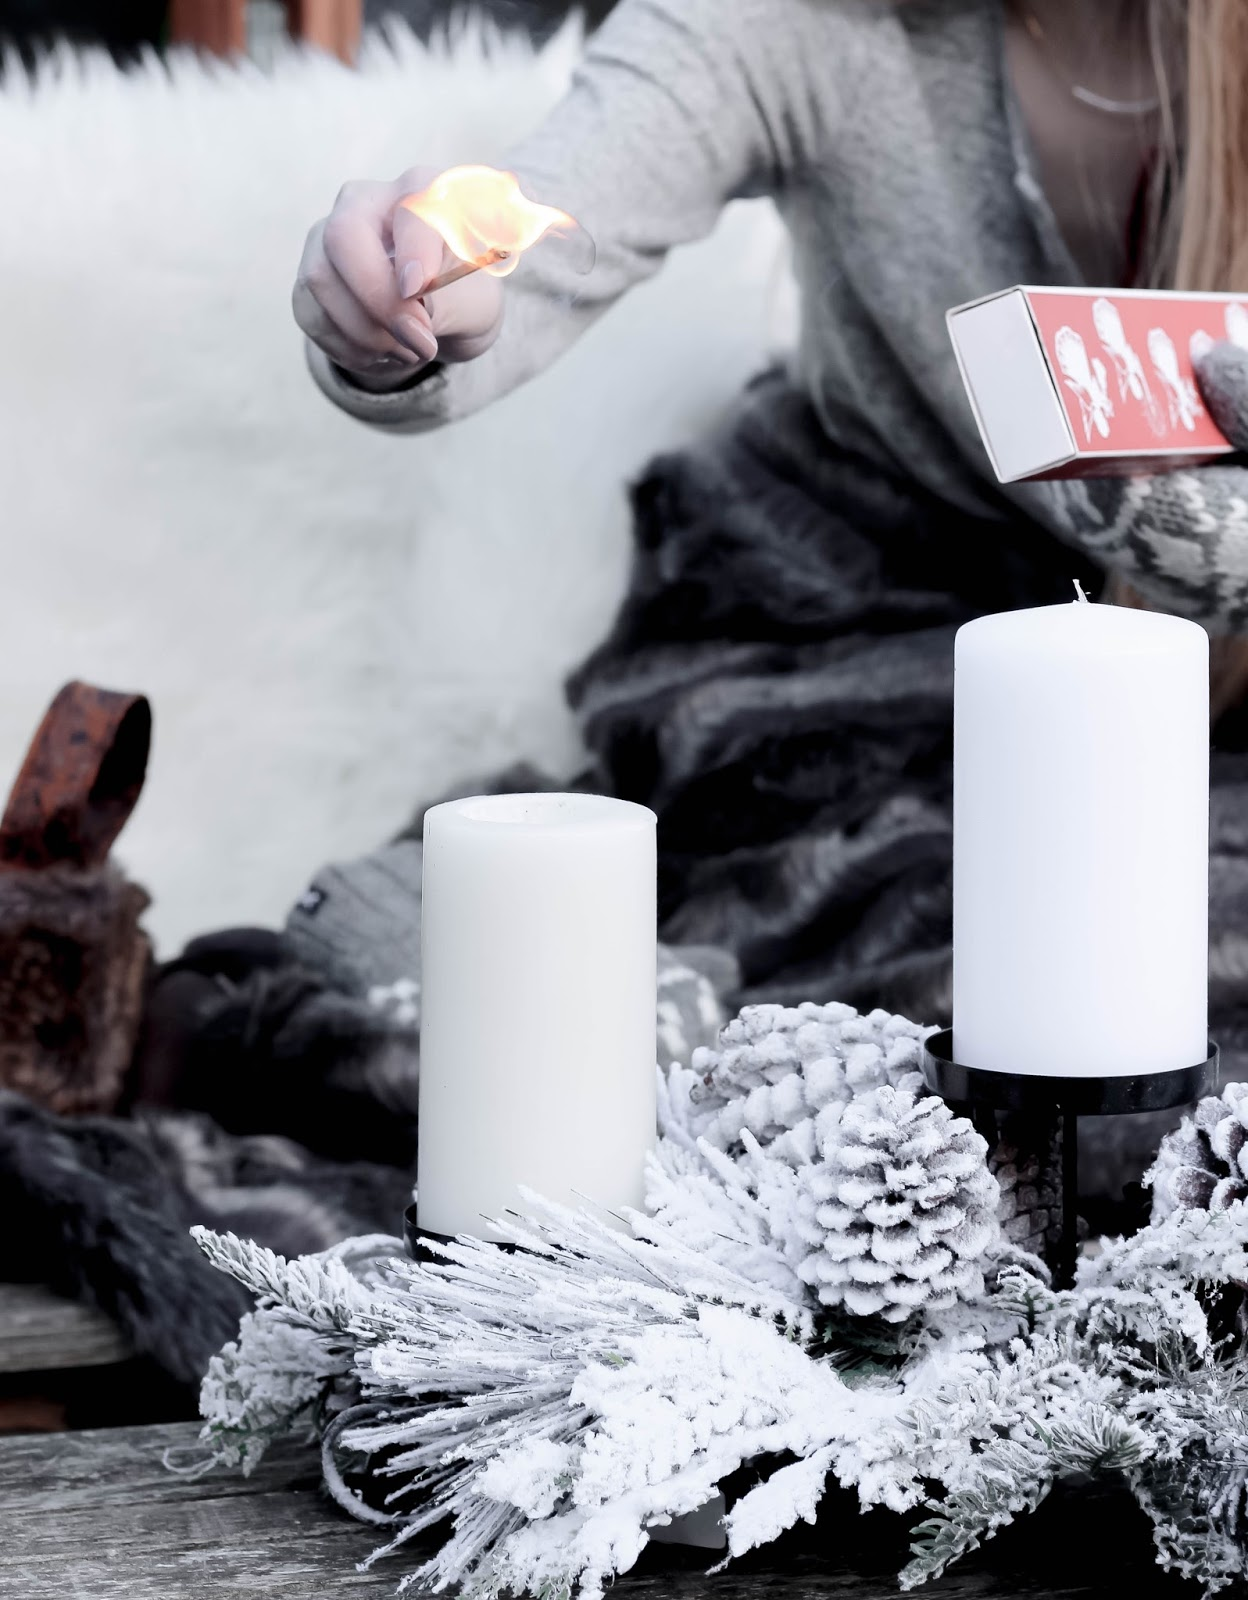 Lighting Luxurious Candles with Matches